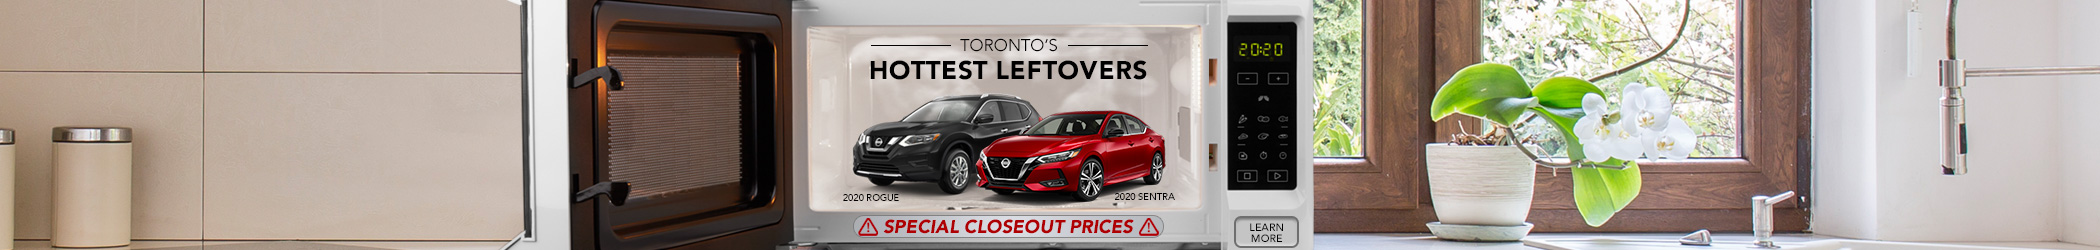 Click to Shop Toronto's Hottest Leftovers